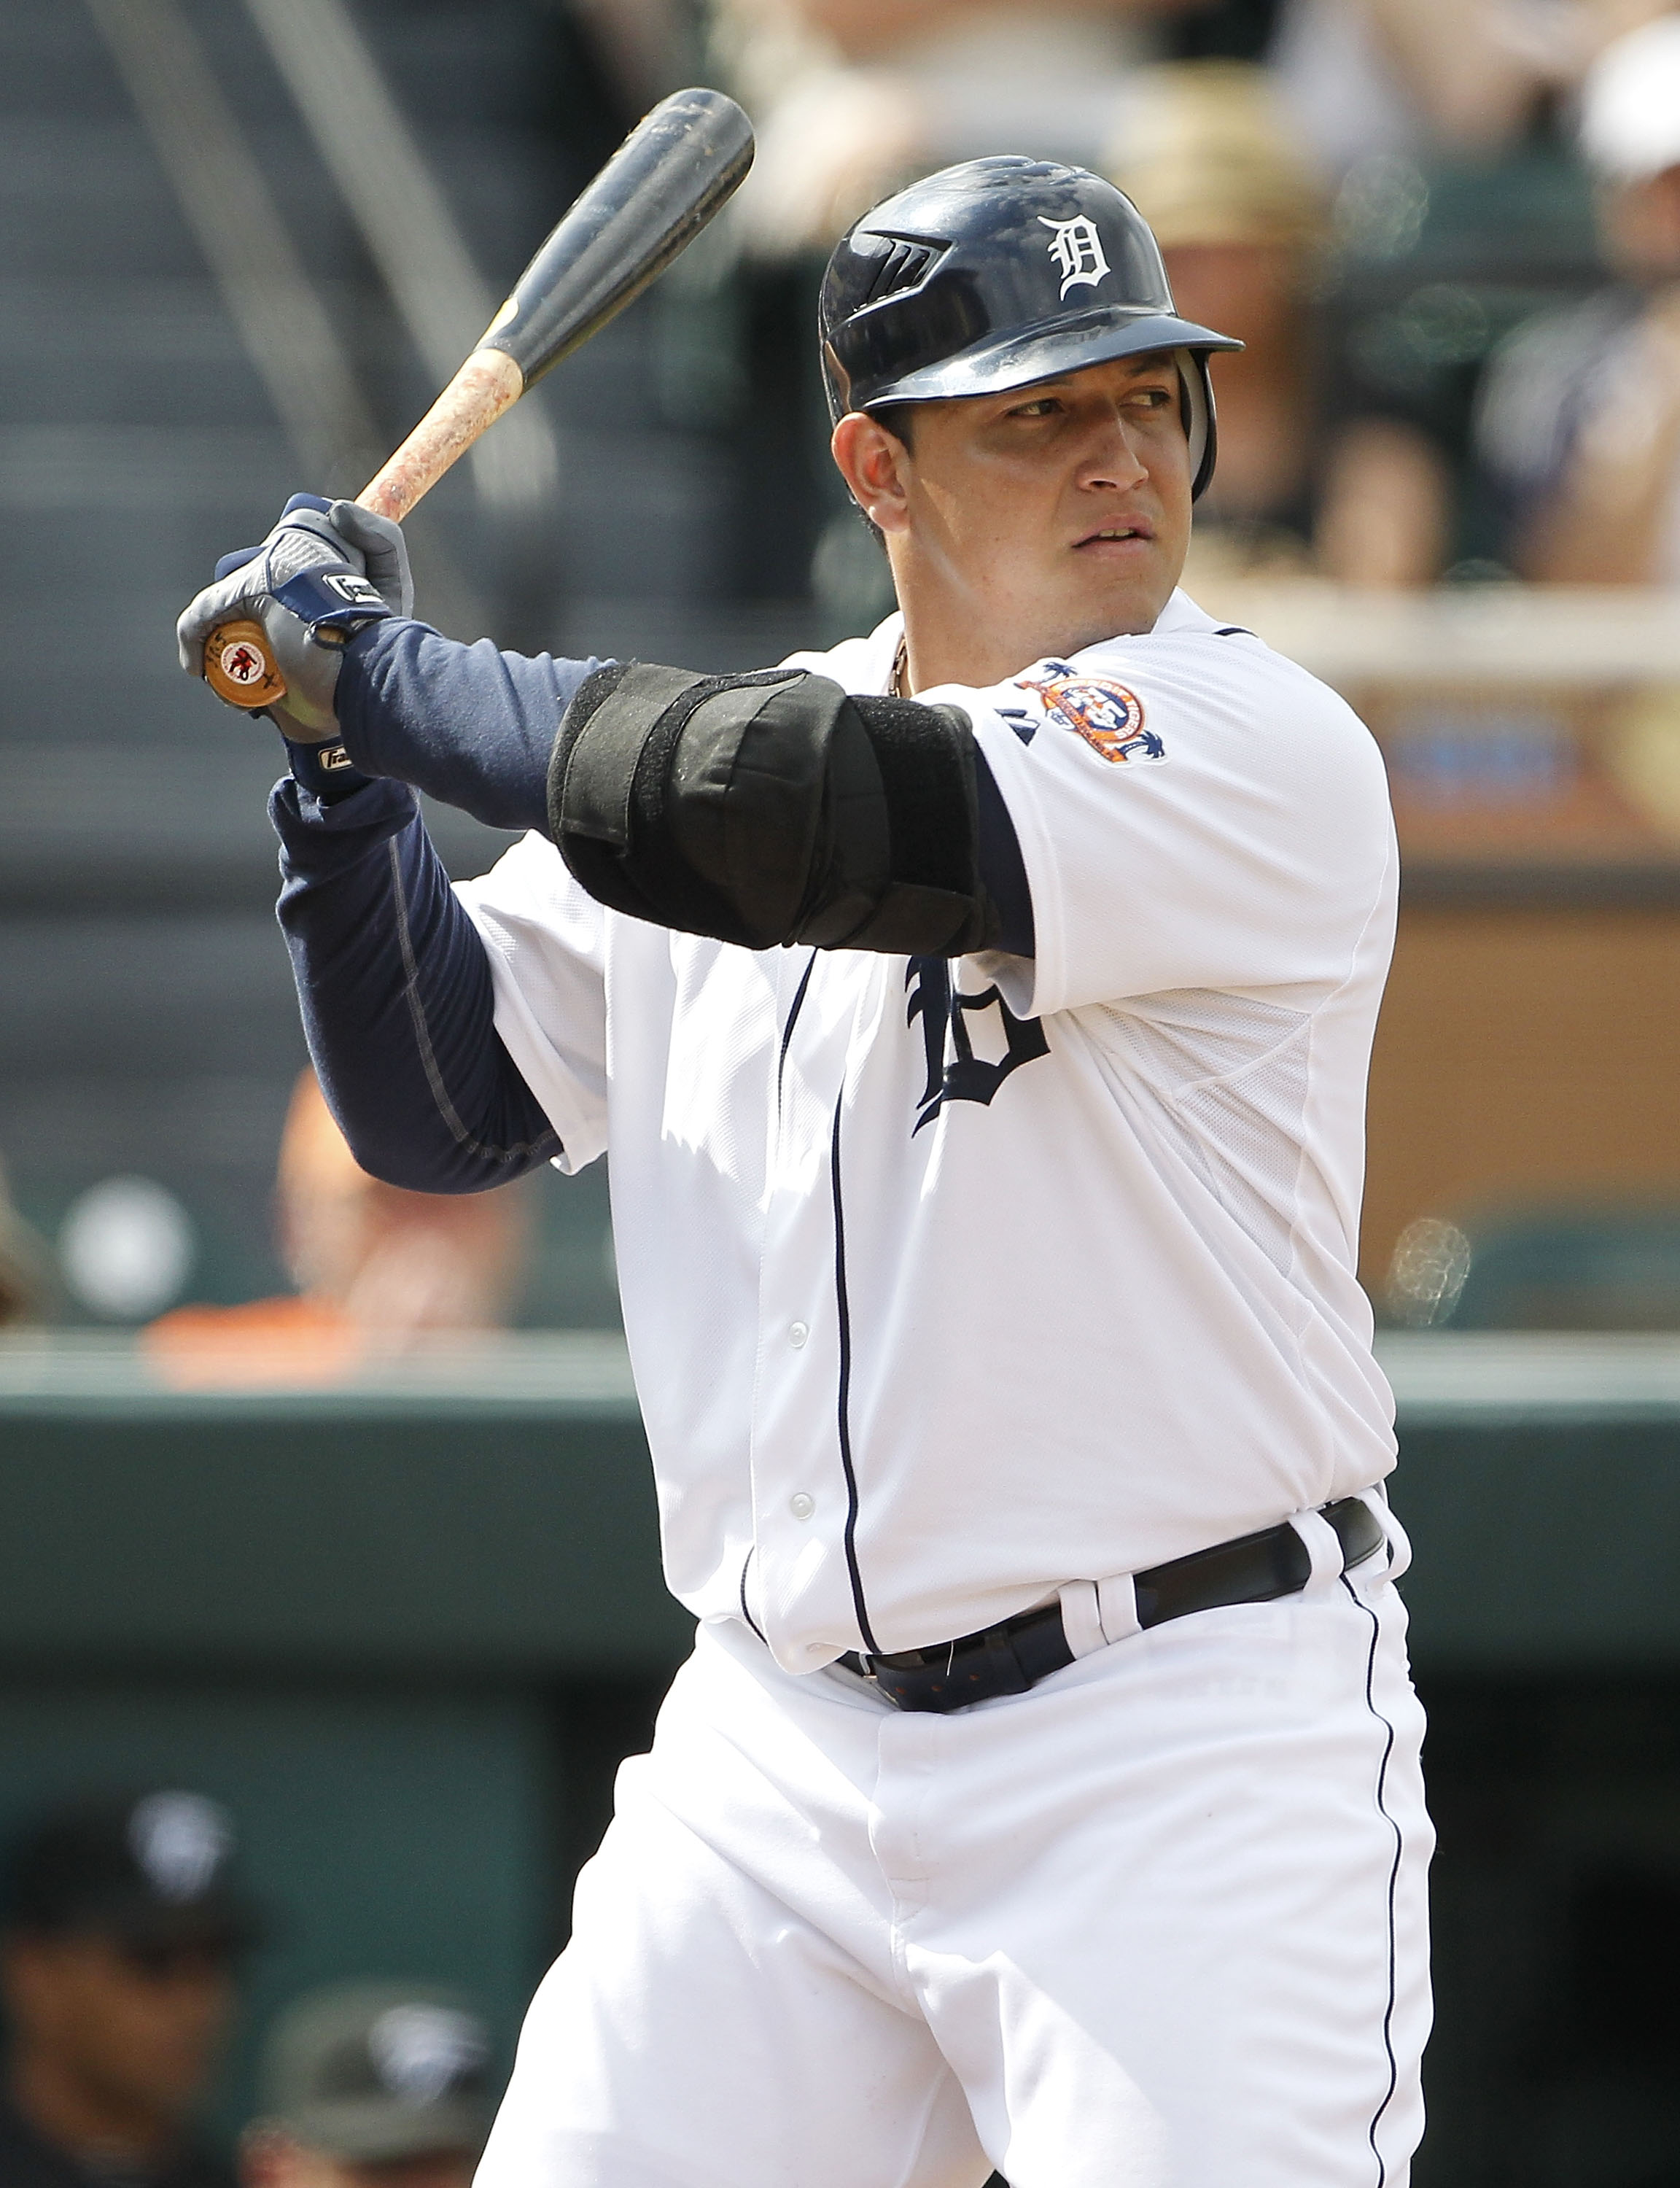 LAKELAND, FL - MARCH 01:  Miguel Cabrera #24 of the Detroit Tigers bats during the game against the Toronto Blue Jays at Joker Marchant Stadium on March 1, 2011 in Lakeland, Florida. The Tigers defeated the Blue Jays 6-2.  (Photo by Leon Halip/Getty Image